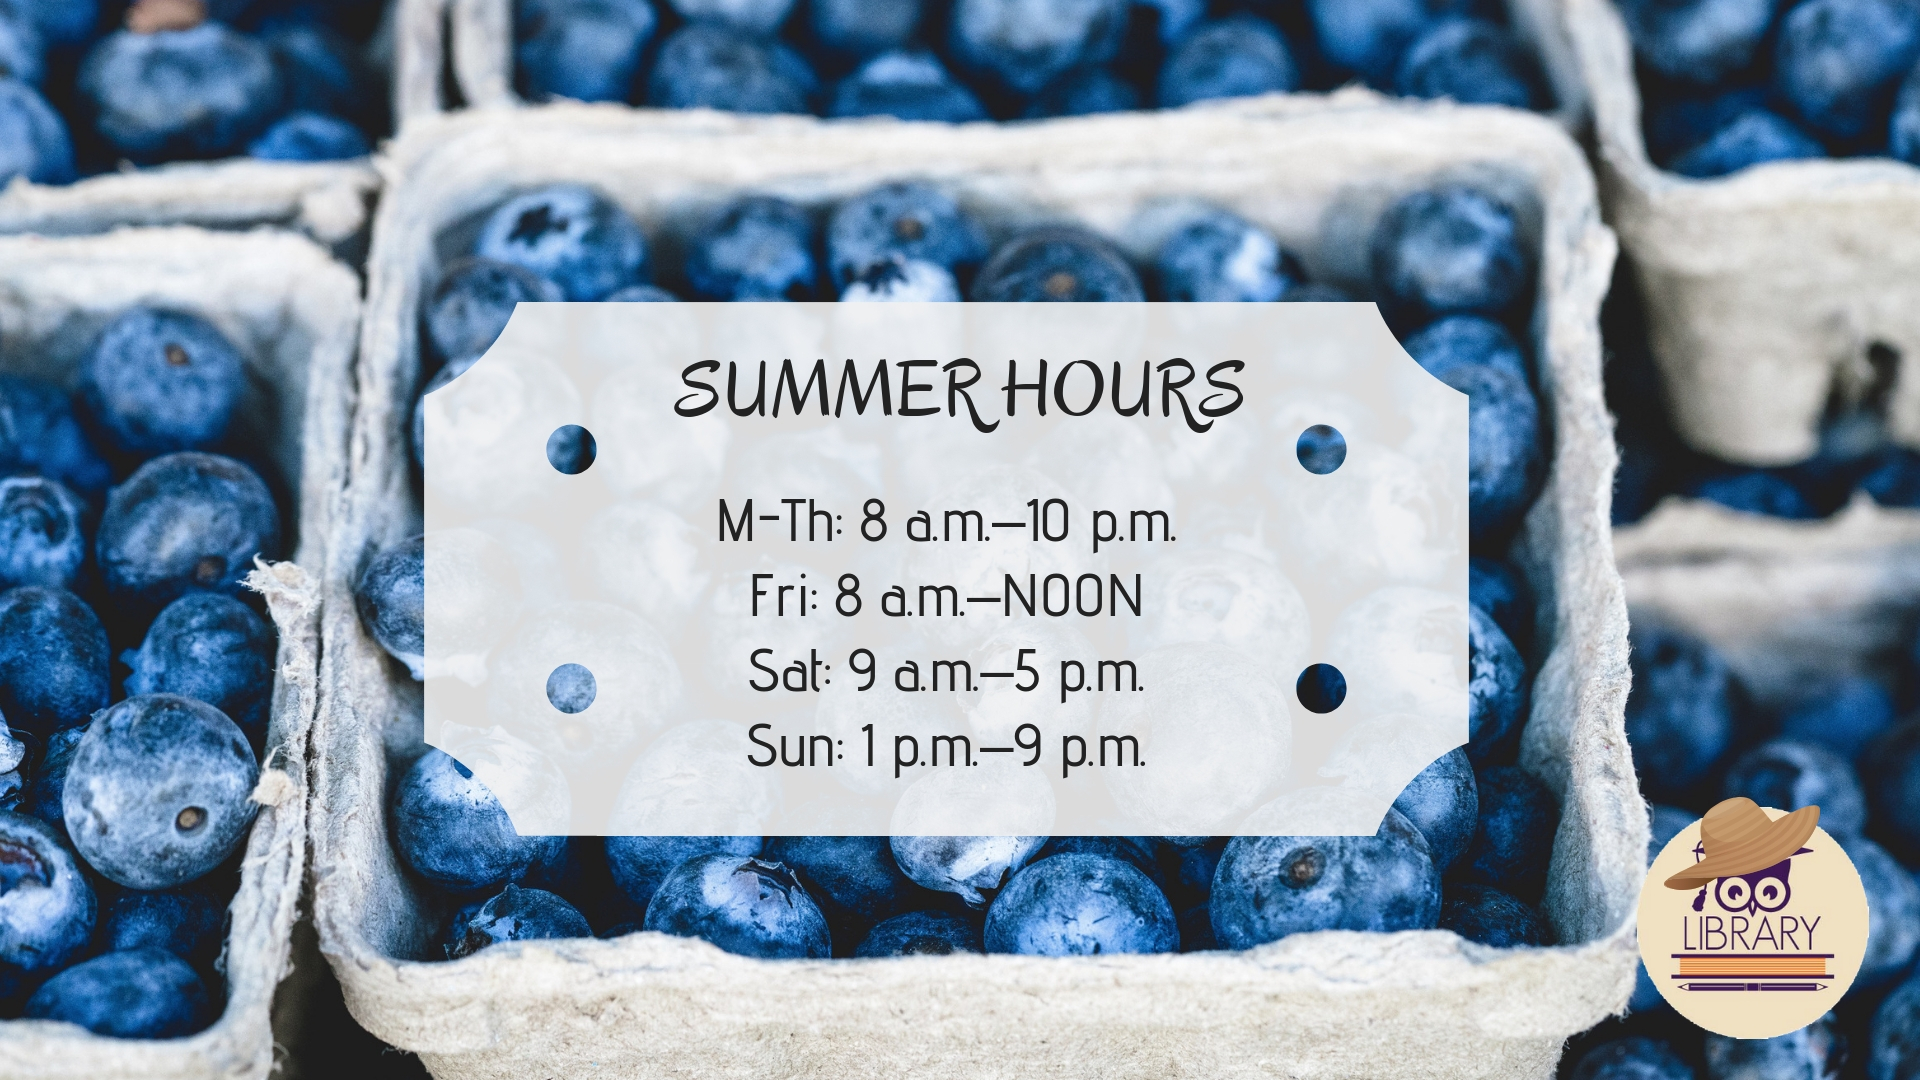 Library Summer Hours are M-Th 8-10; Fr 8-noon; sat 9-5; sun 1-9